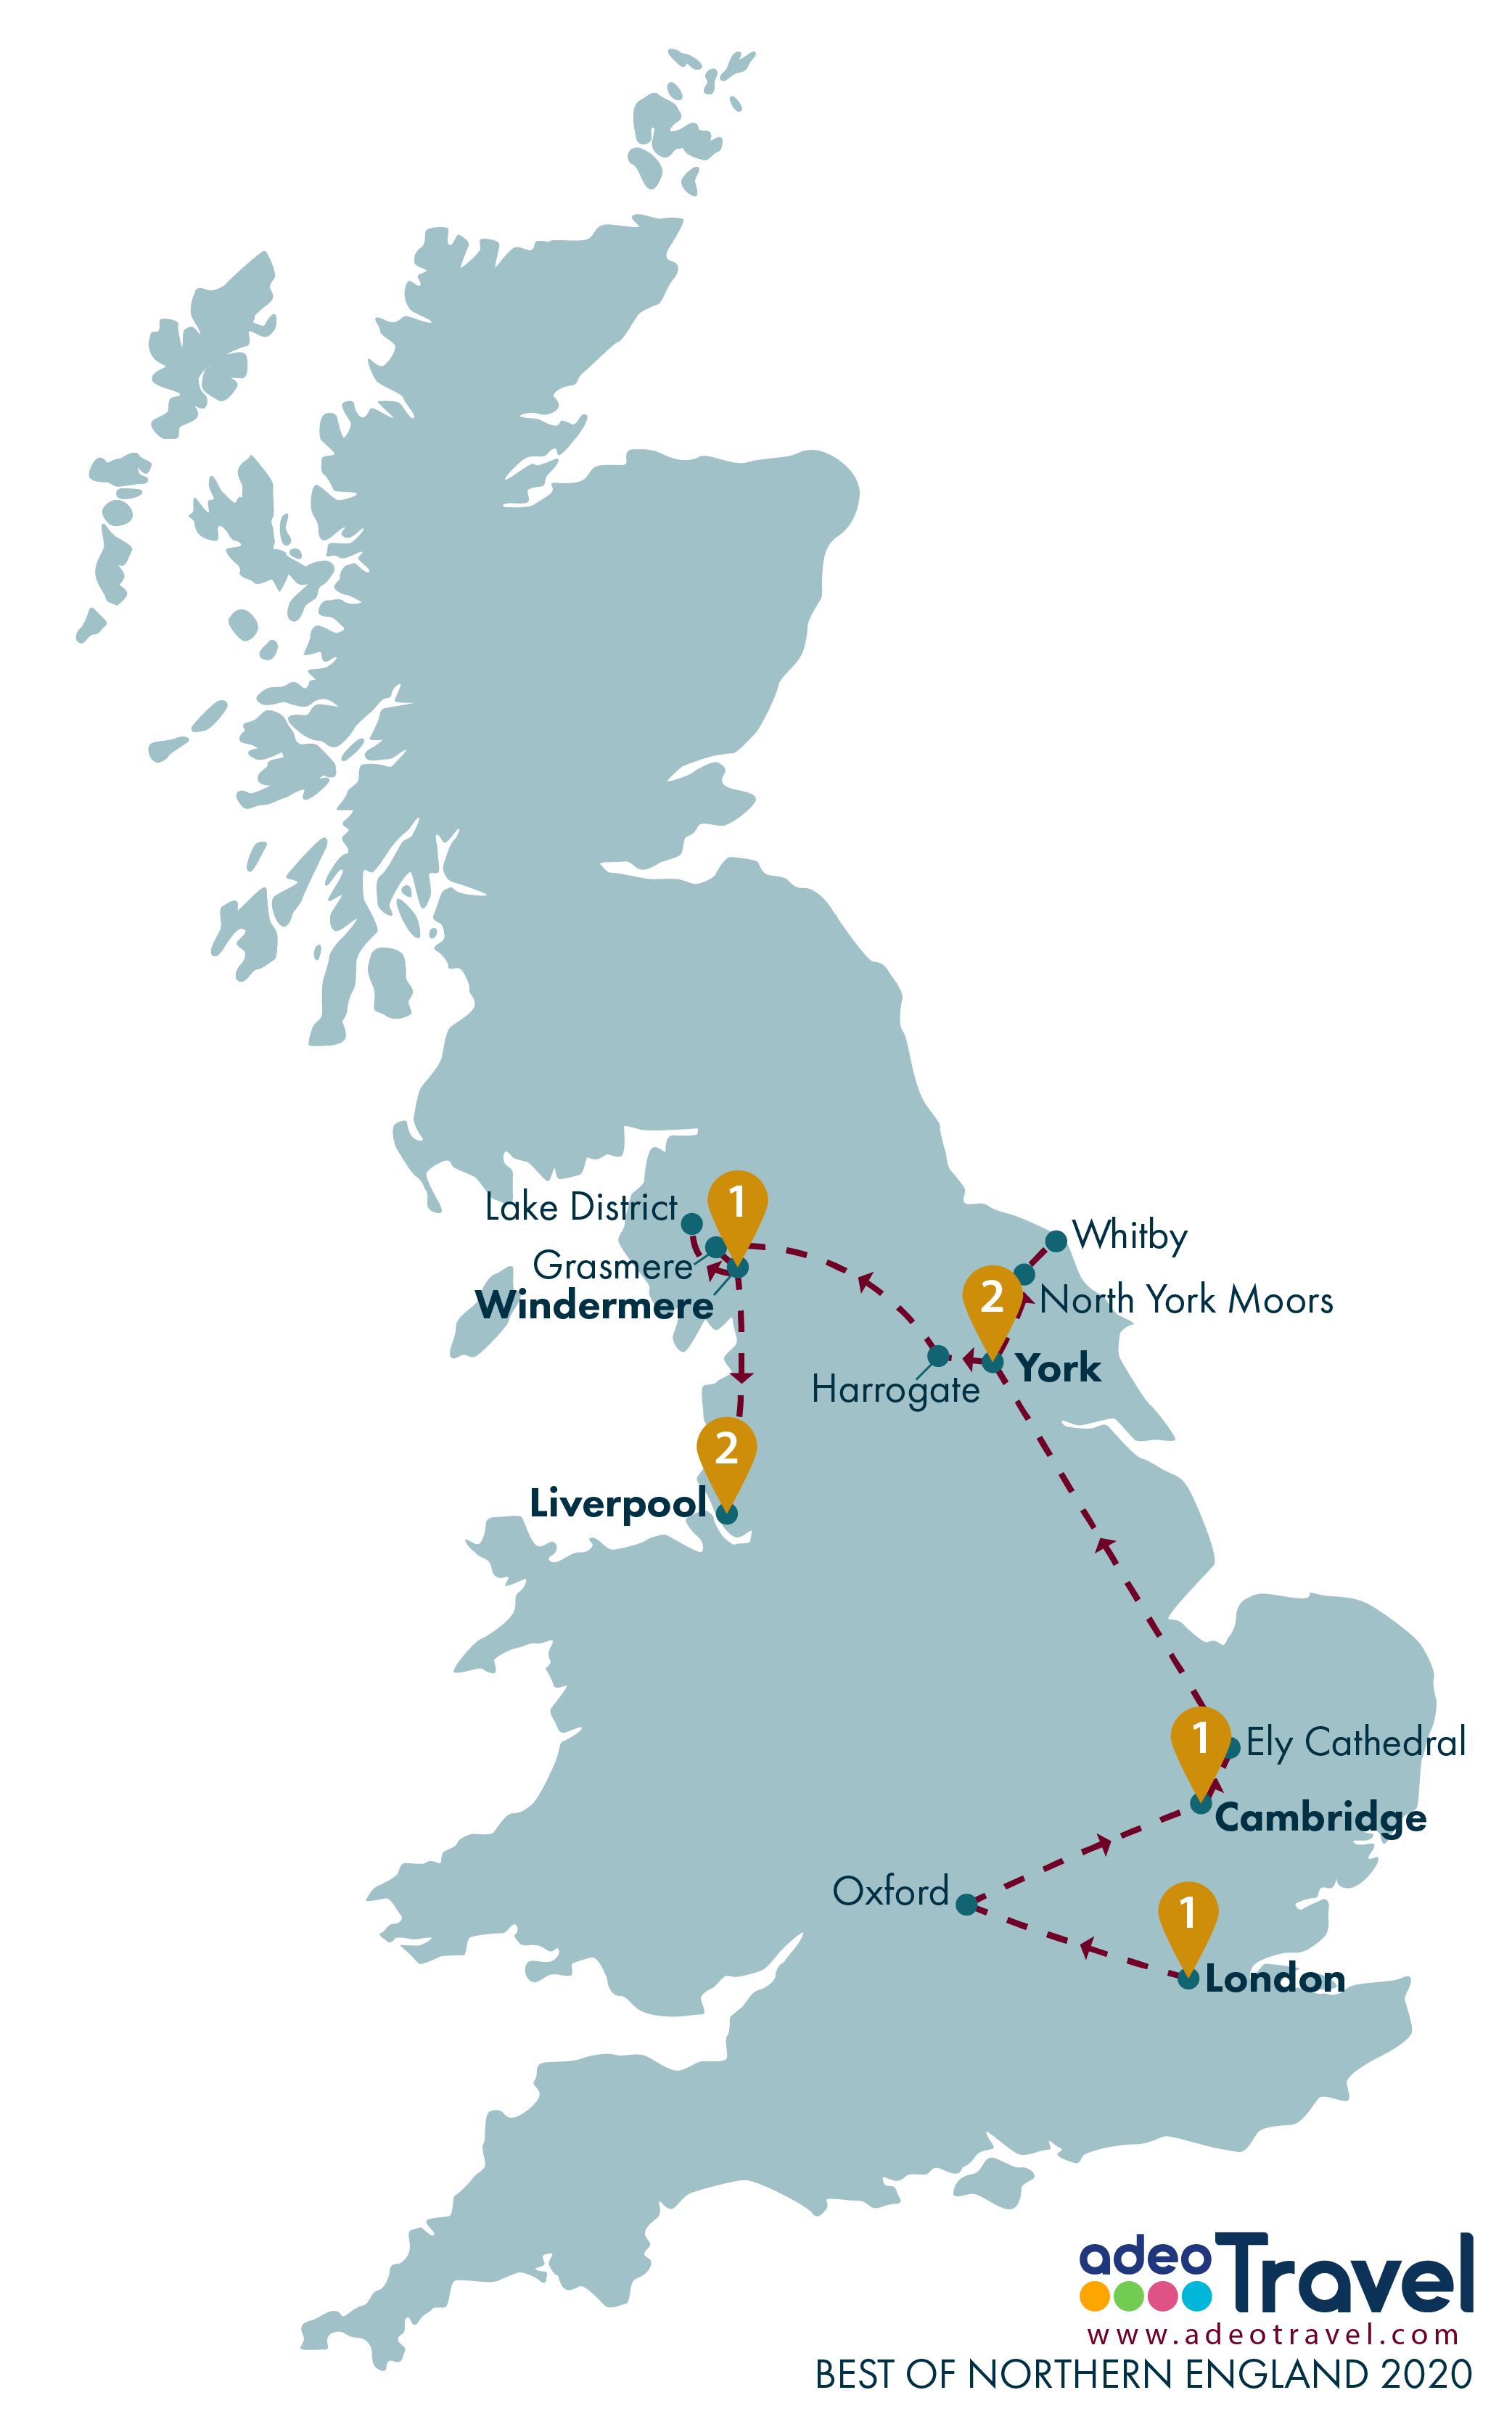 Map - Best of Northern England 2020